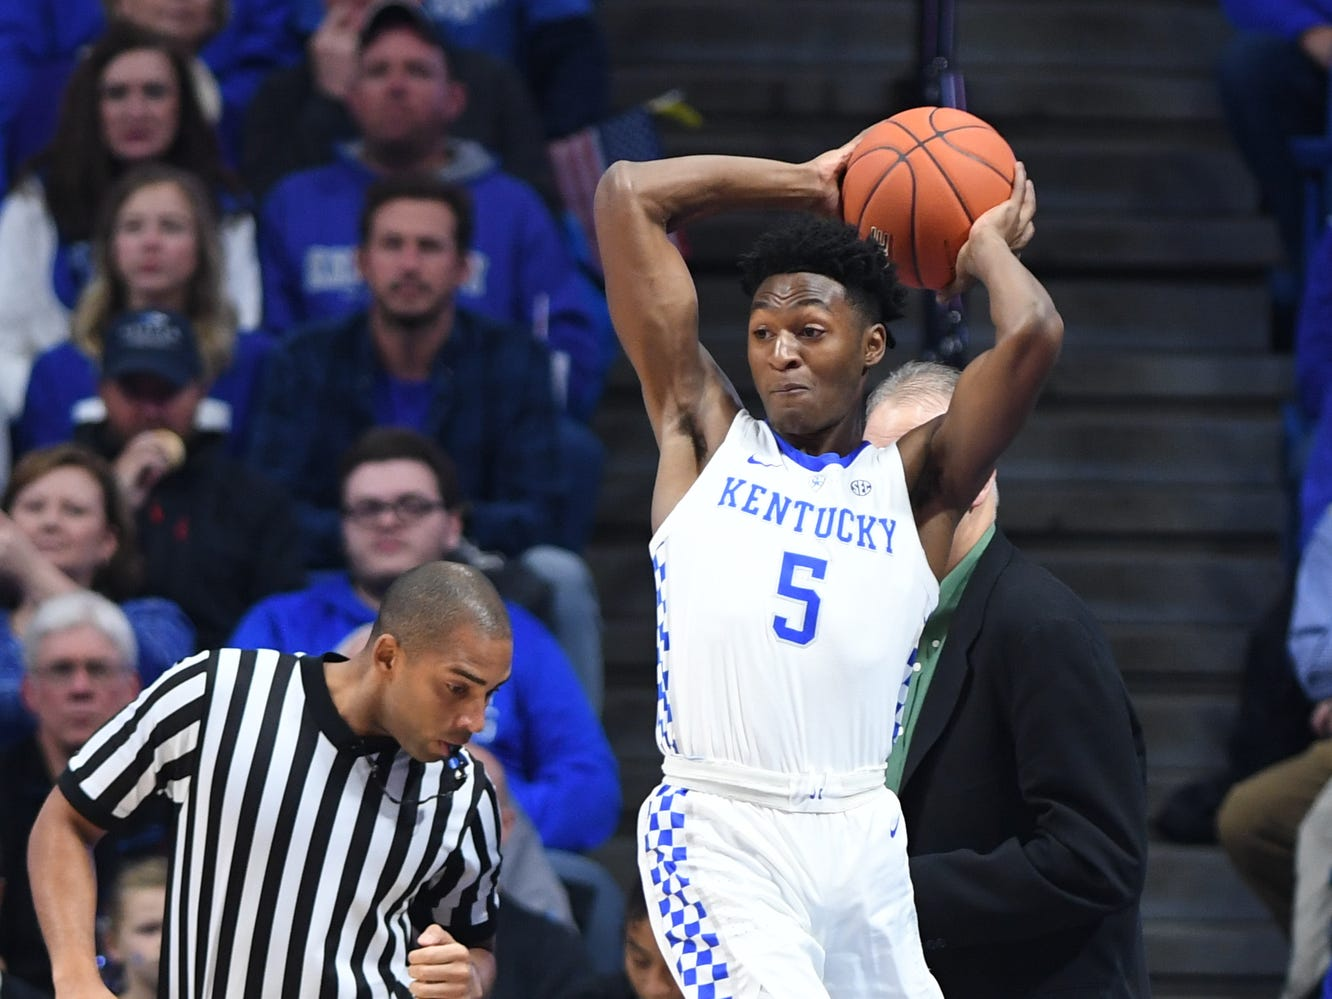 UK G Immanuel Quickley saves the ball from going out of bounds during the University of Kentucky mens basketball game against North Dakota at Rupp Arena in Lexington, Kentucky on Wednesday, November 14, 2018.